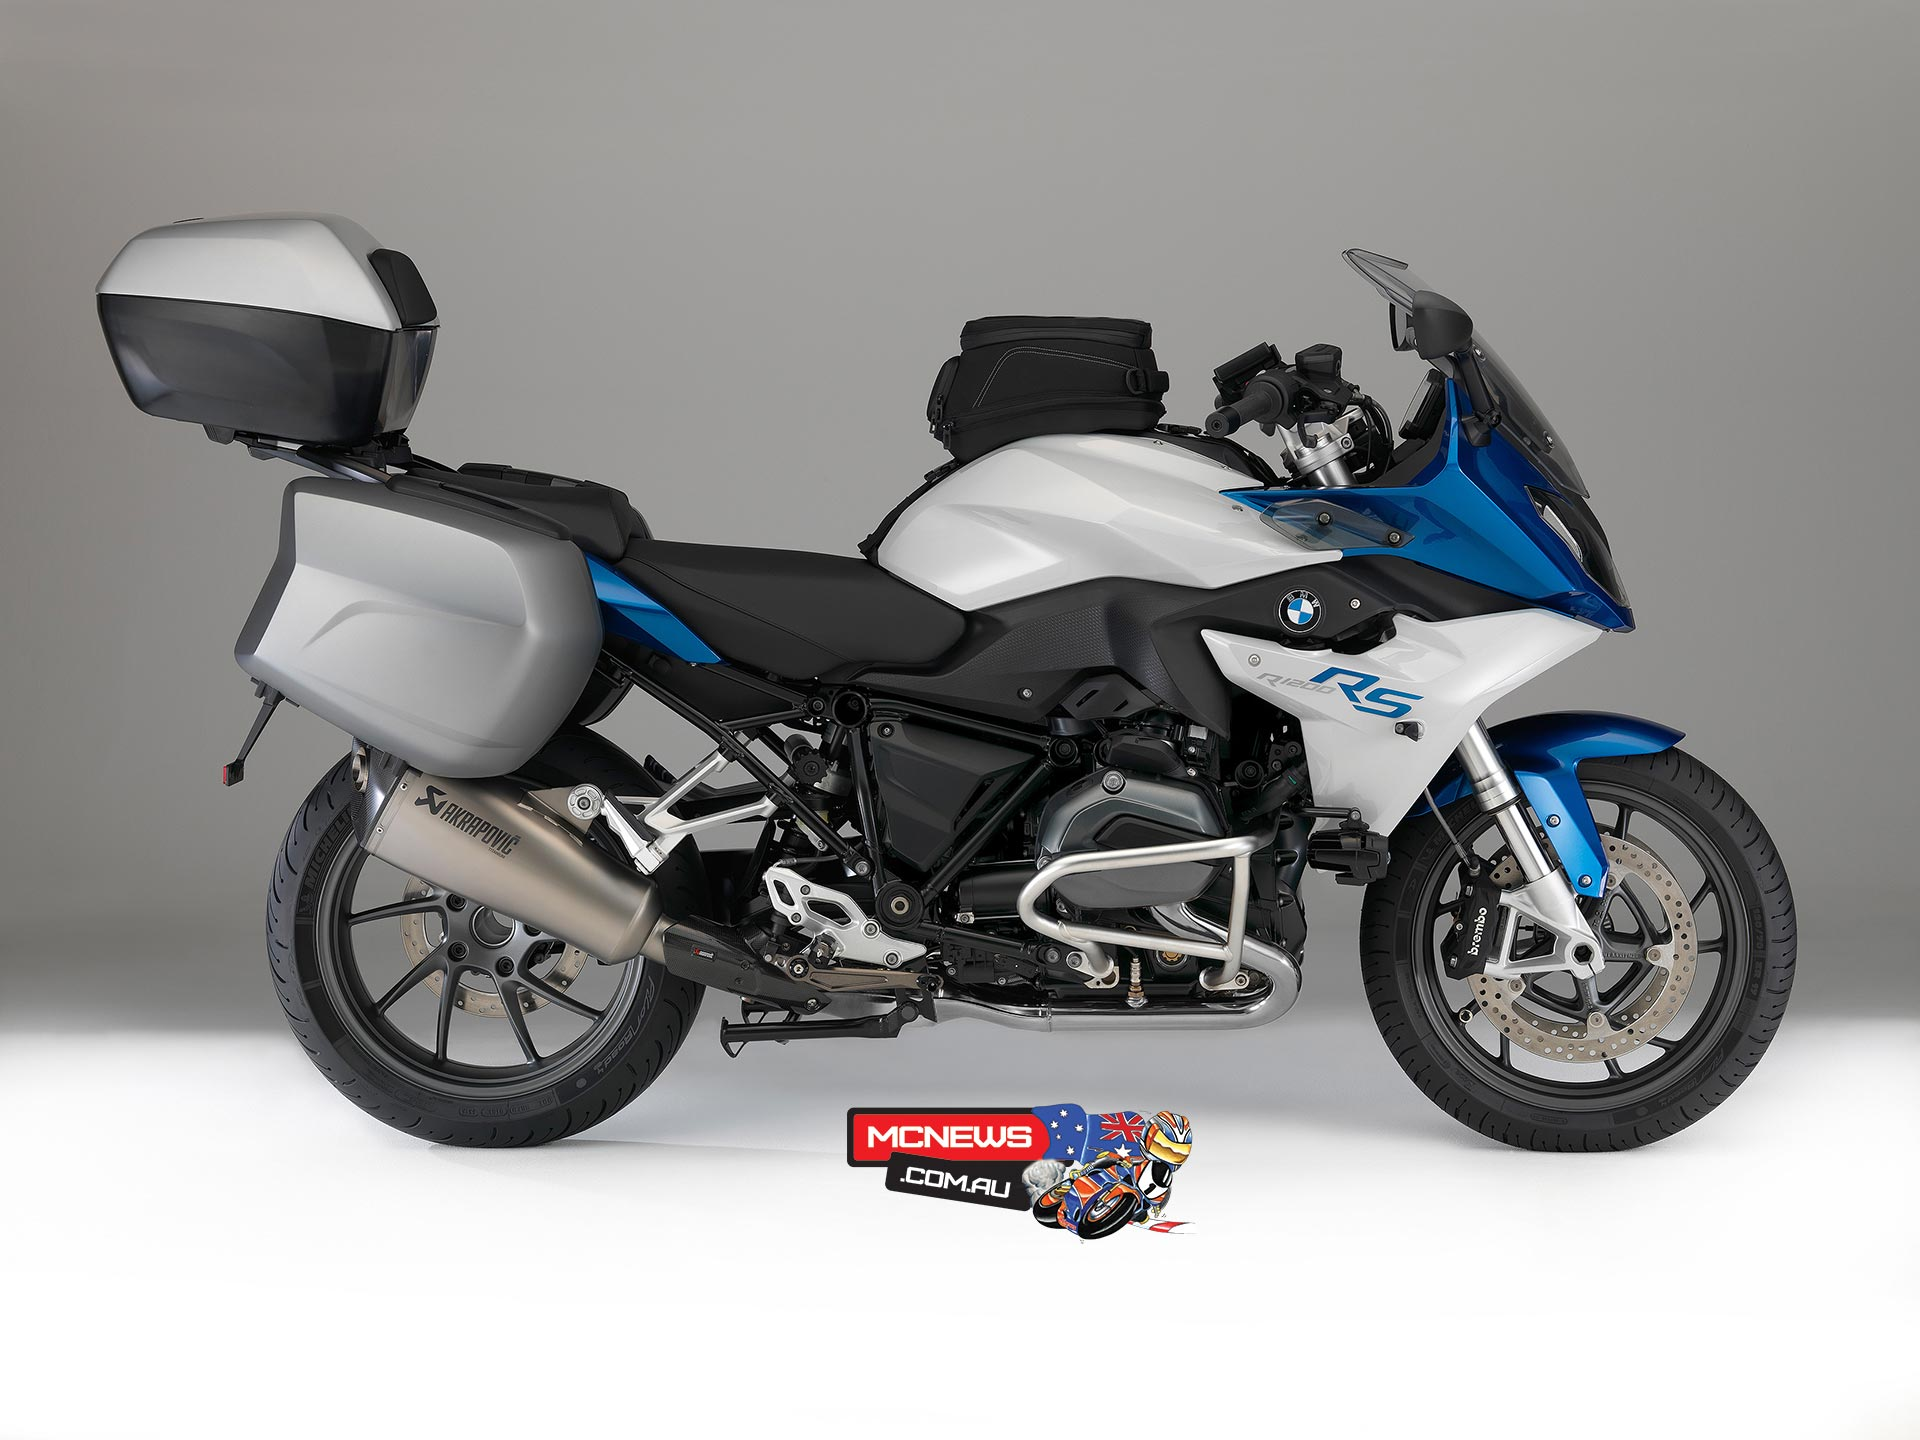 BMW R1200RS 2015 images #9266